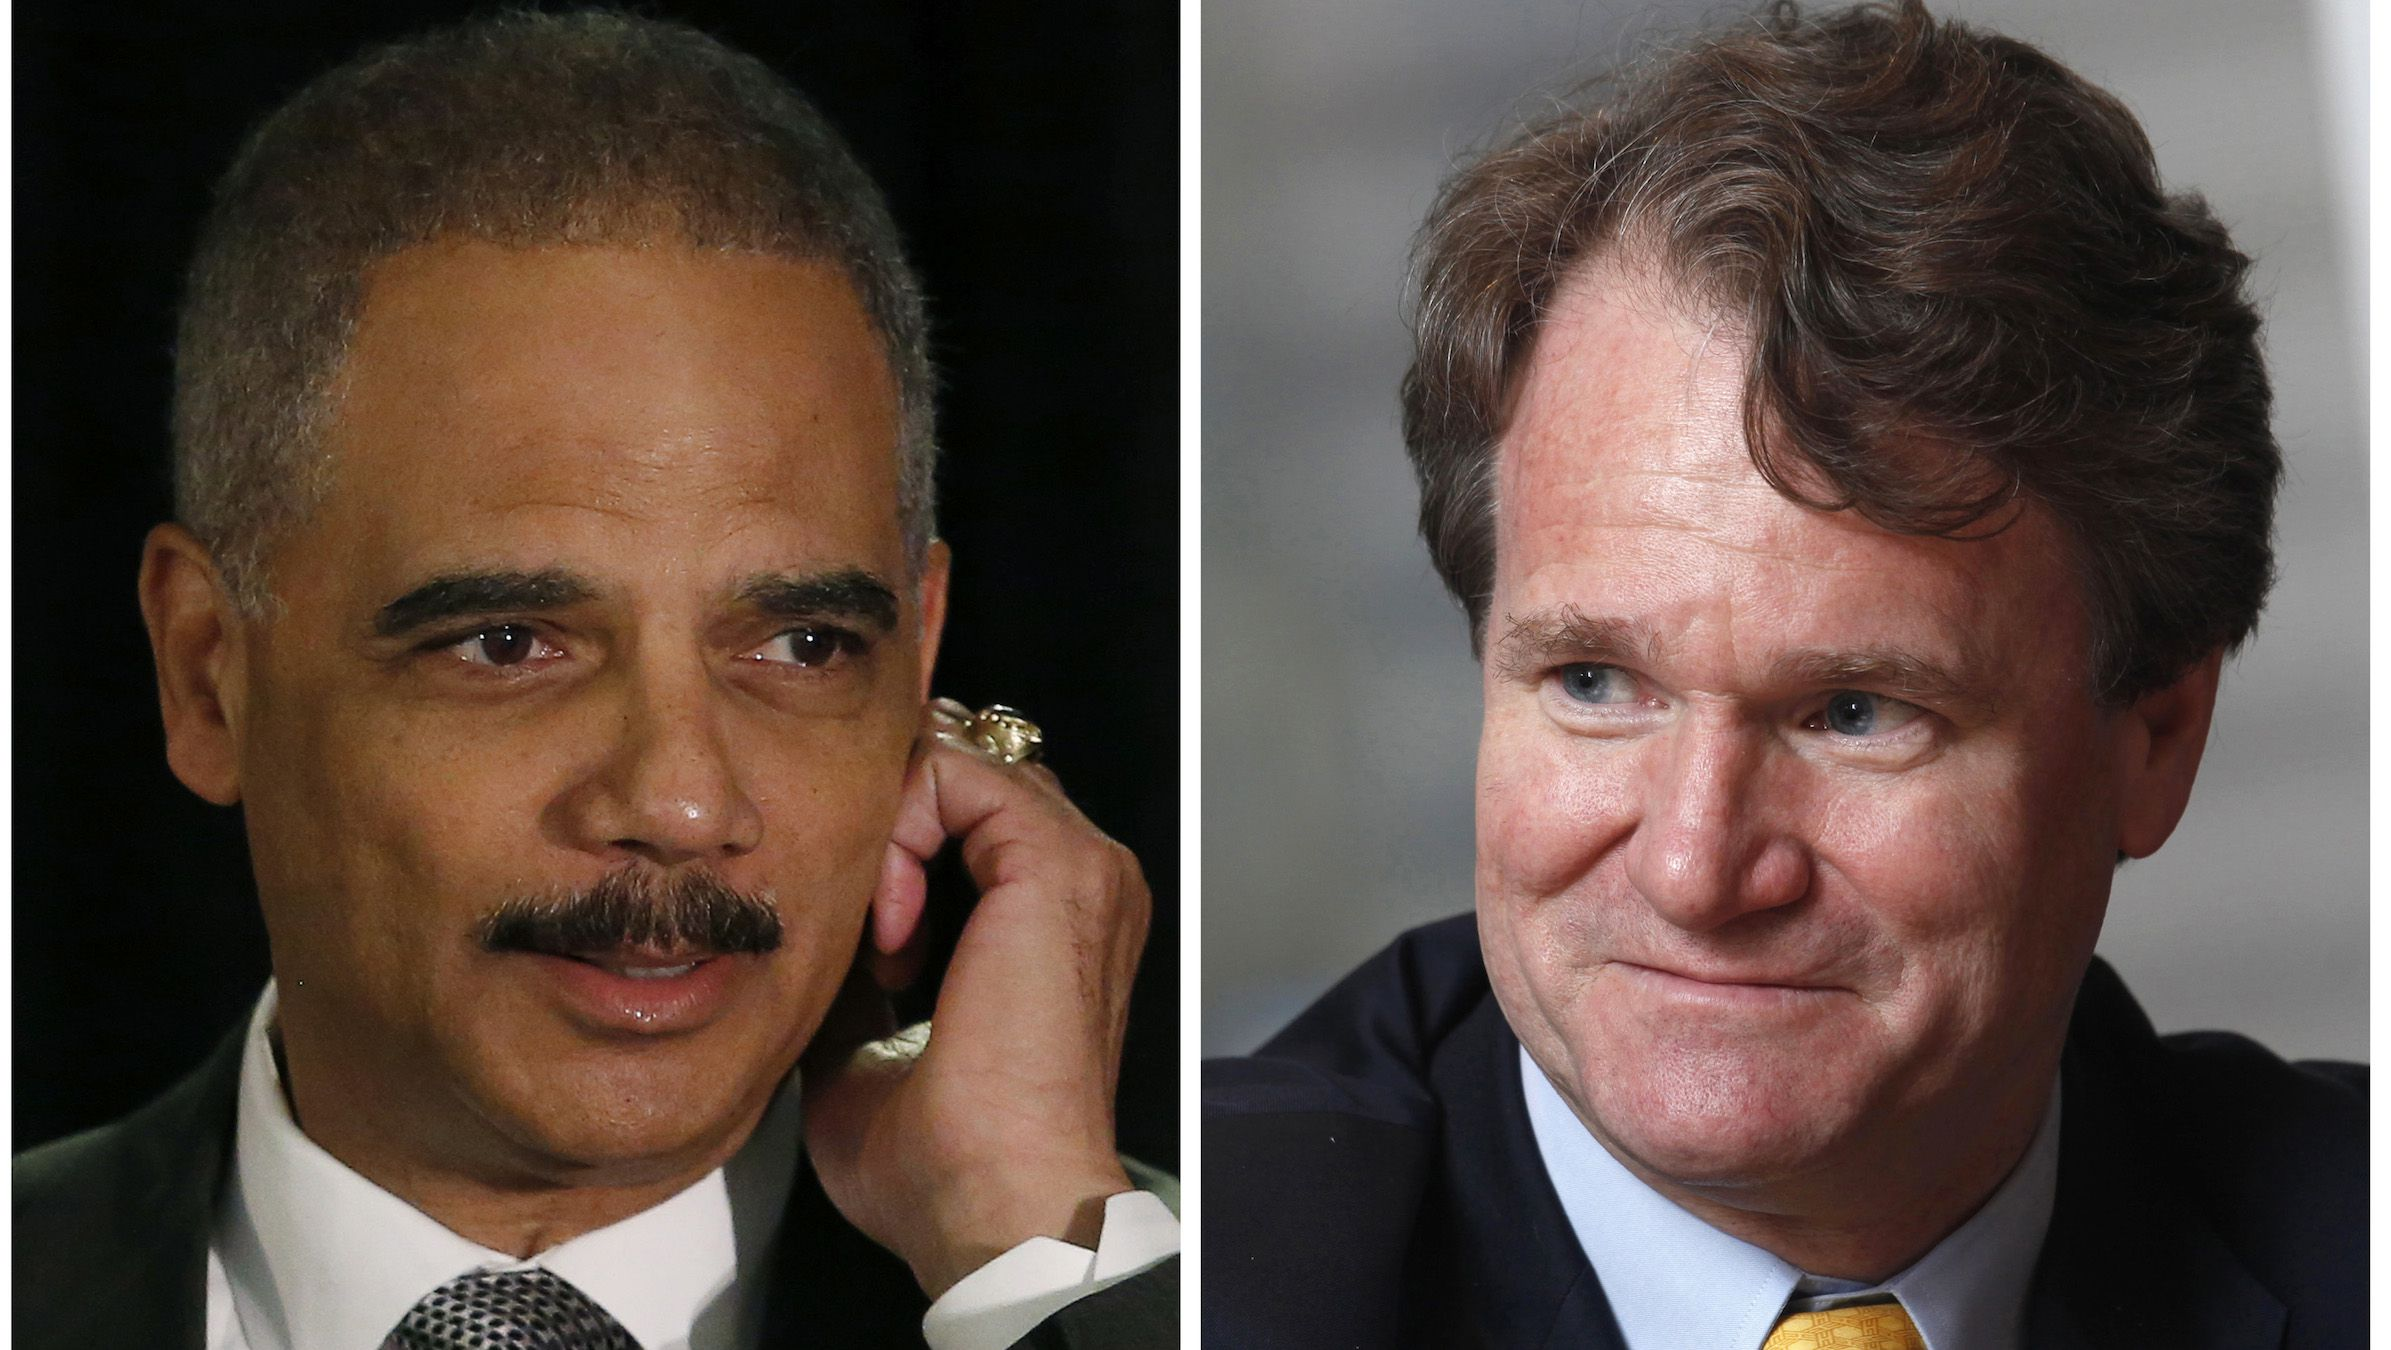 A combination of file photos shows U.S. Attorney General Eric Holder (L) in Washington on May 5, 2014 and Bank of America Chief Executive Brian Moynihan in Hong Kong on March 8, 2013 respectively. The second-largest U.S. bank's representatives have asked for Moynihan to meet with U.S. Attorney General Eric Holder, reported June 20, 2014, in an attempt to resolve differences in a possible multibillion-dollar settlement over shoddy mortgage securities the bank and its units sold, according to people familiar with negotiations.   REUTERS/Gary Cameron/Files (L) and REUTERS/Bobby Yip/Files   (UNITED STATES, CHINA - Tags: POLITICS LAW BUSINESS) - RTR3URZ9